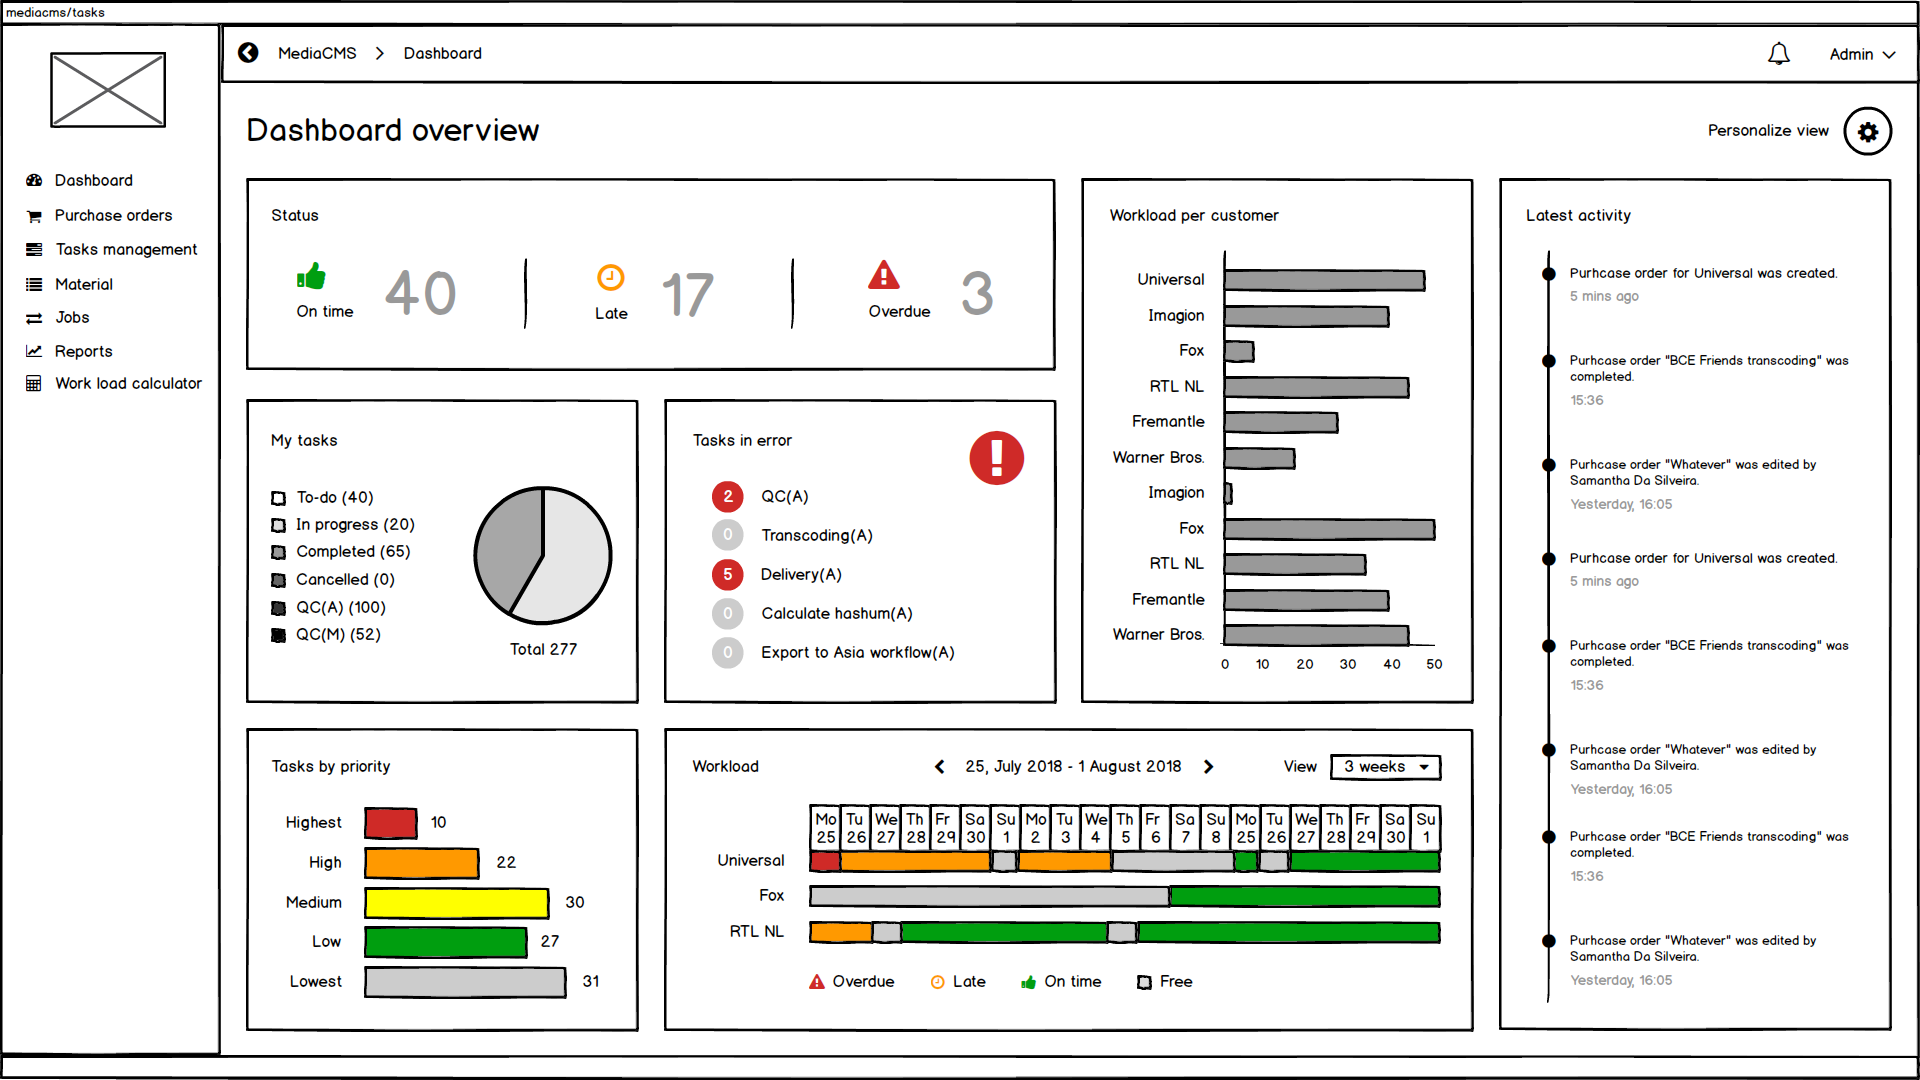 An example of a dashboard each user can customize to their working needs